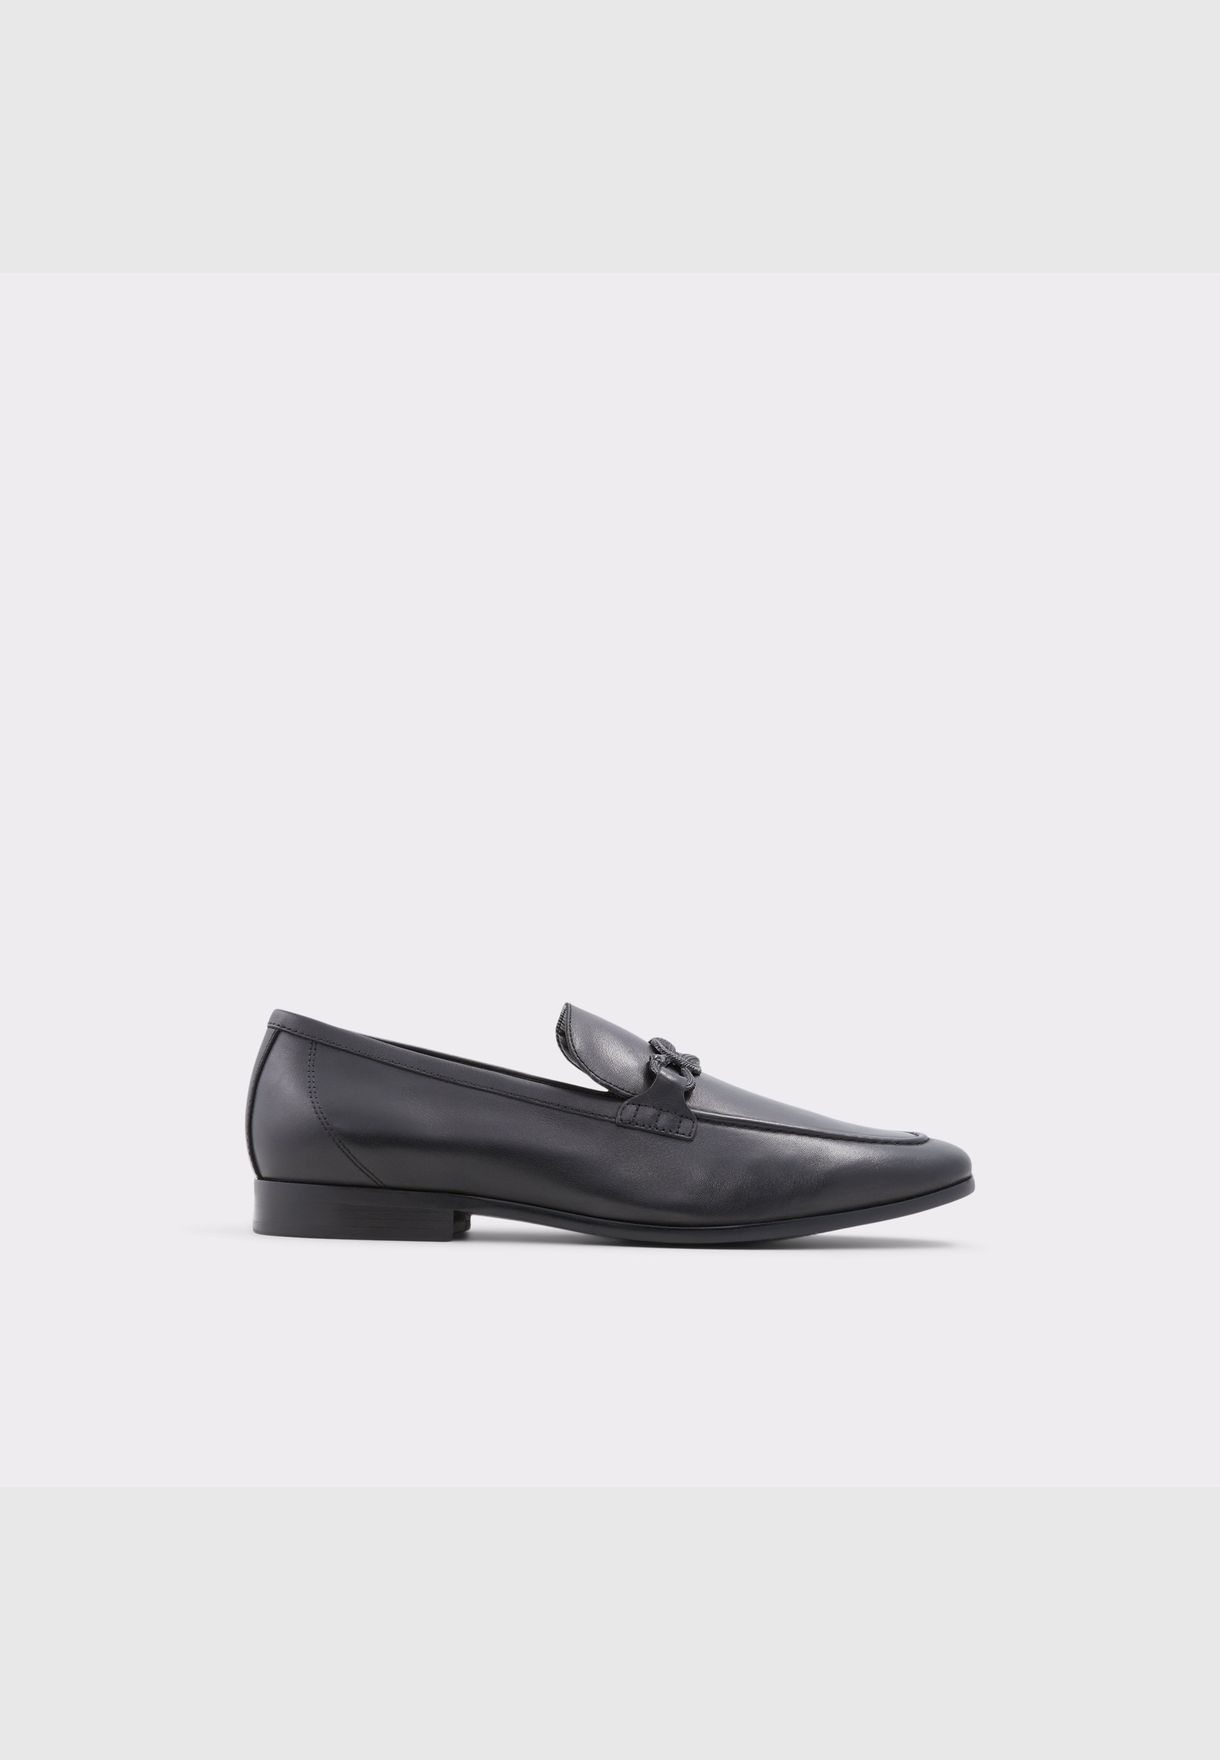 Genuine Leather Shoes Flat Heel